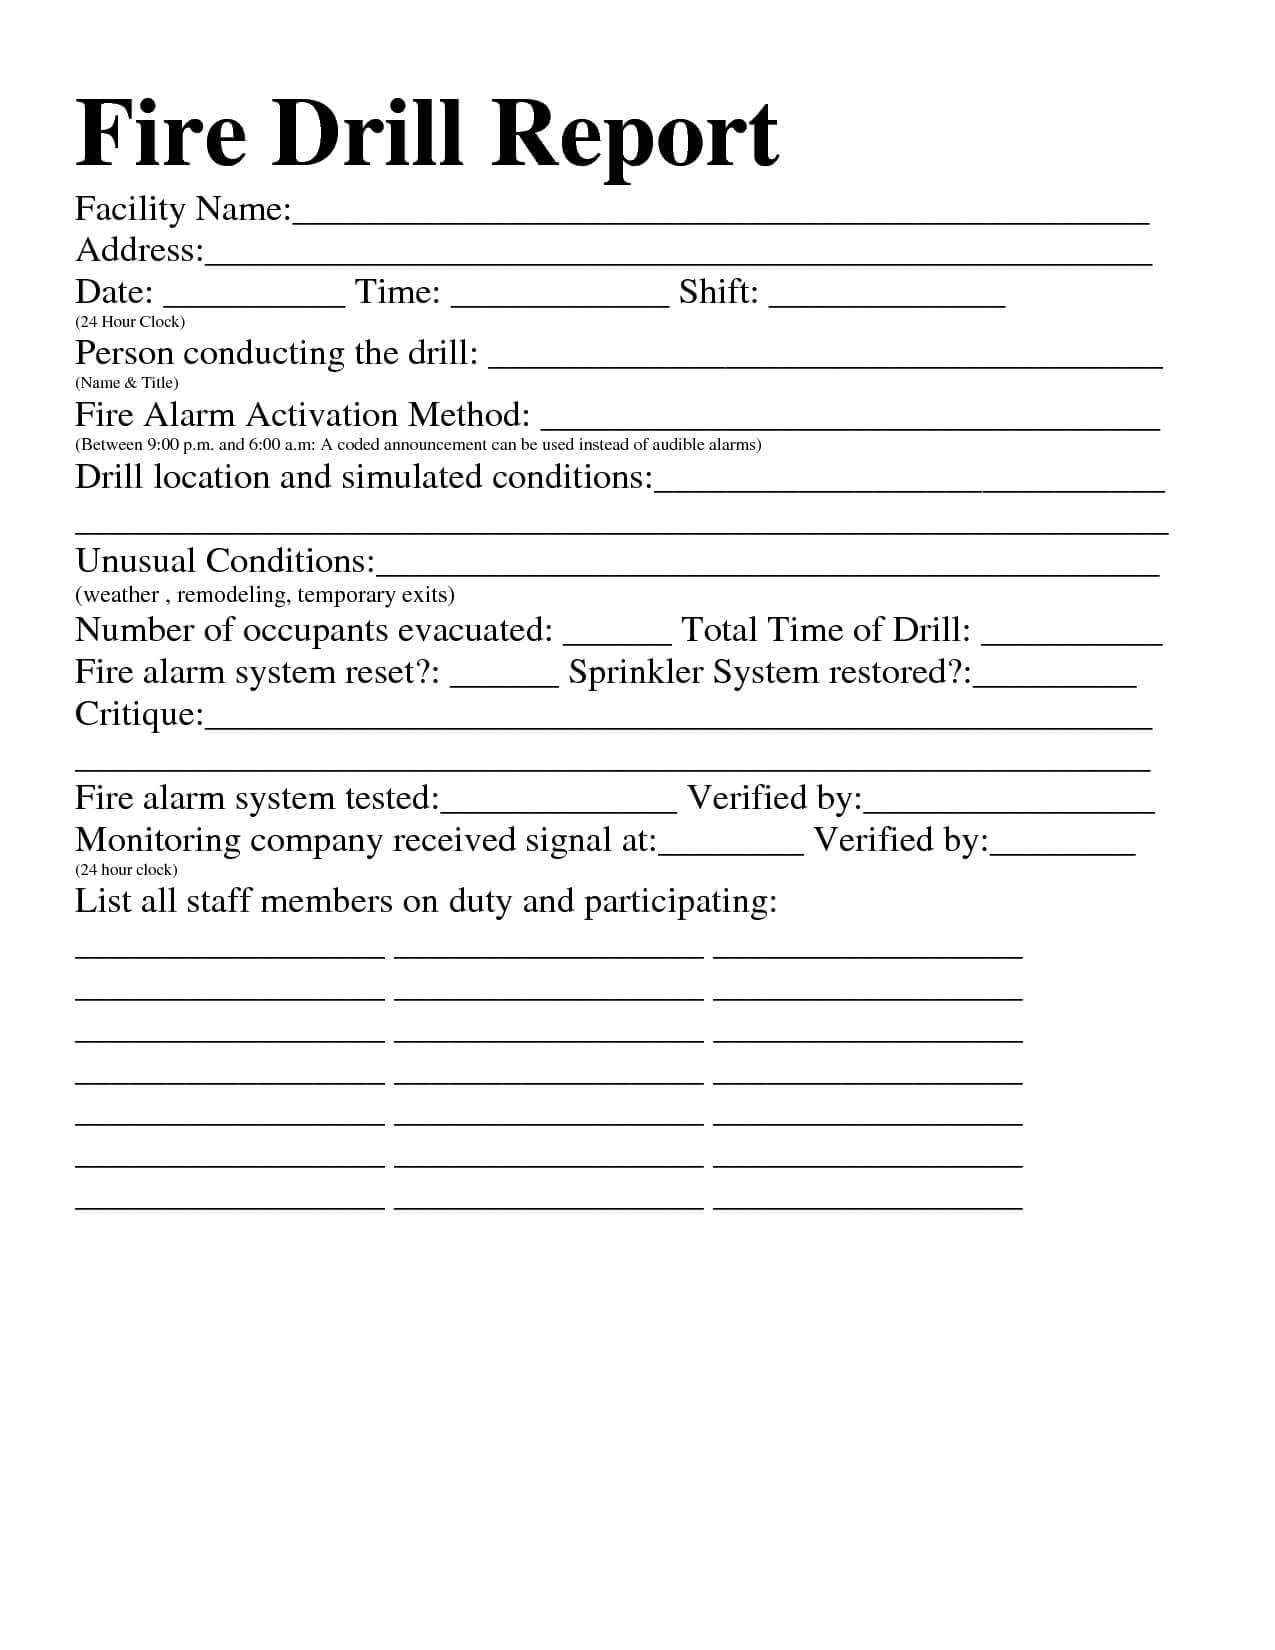 22 Images Of Osha Fire Drill Safety Template | Jackmonster With Regard To Emergency Drill Report Template